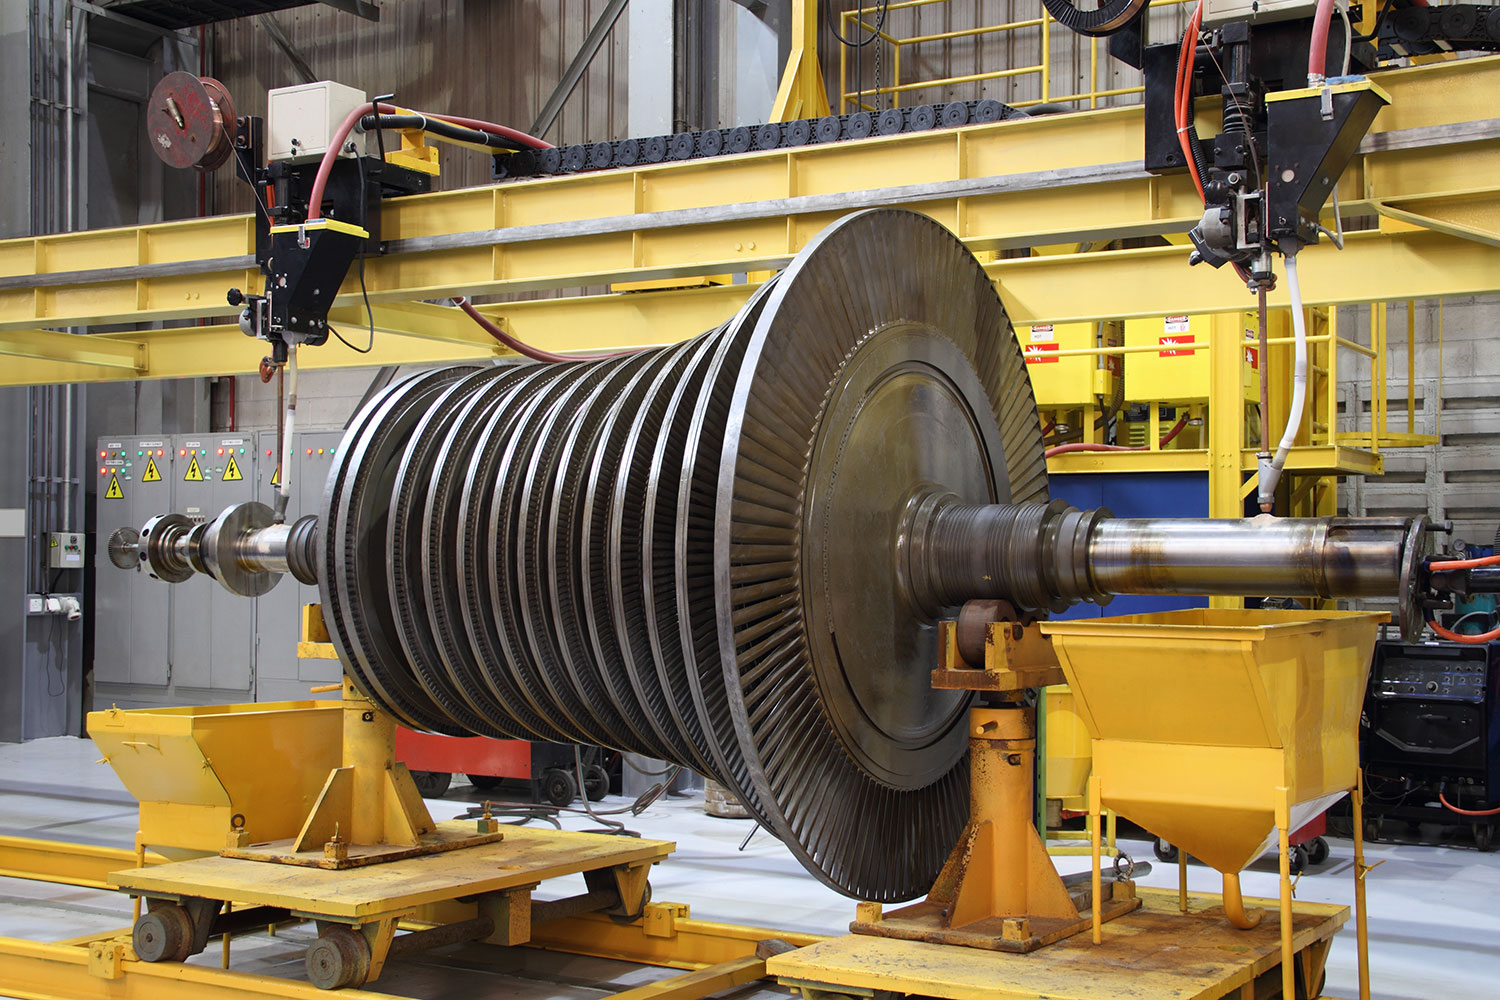 Turbine Undergoing Maintenance